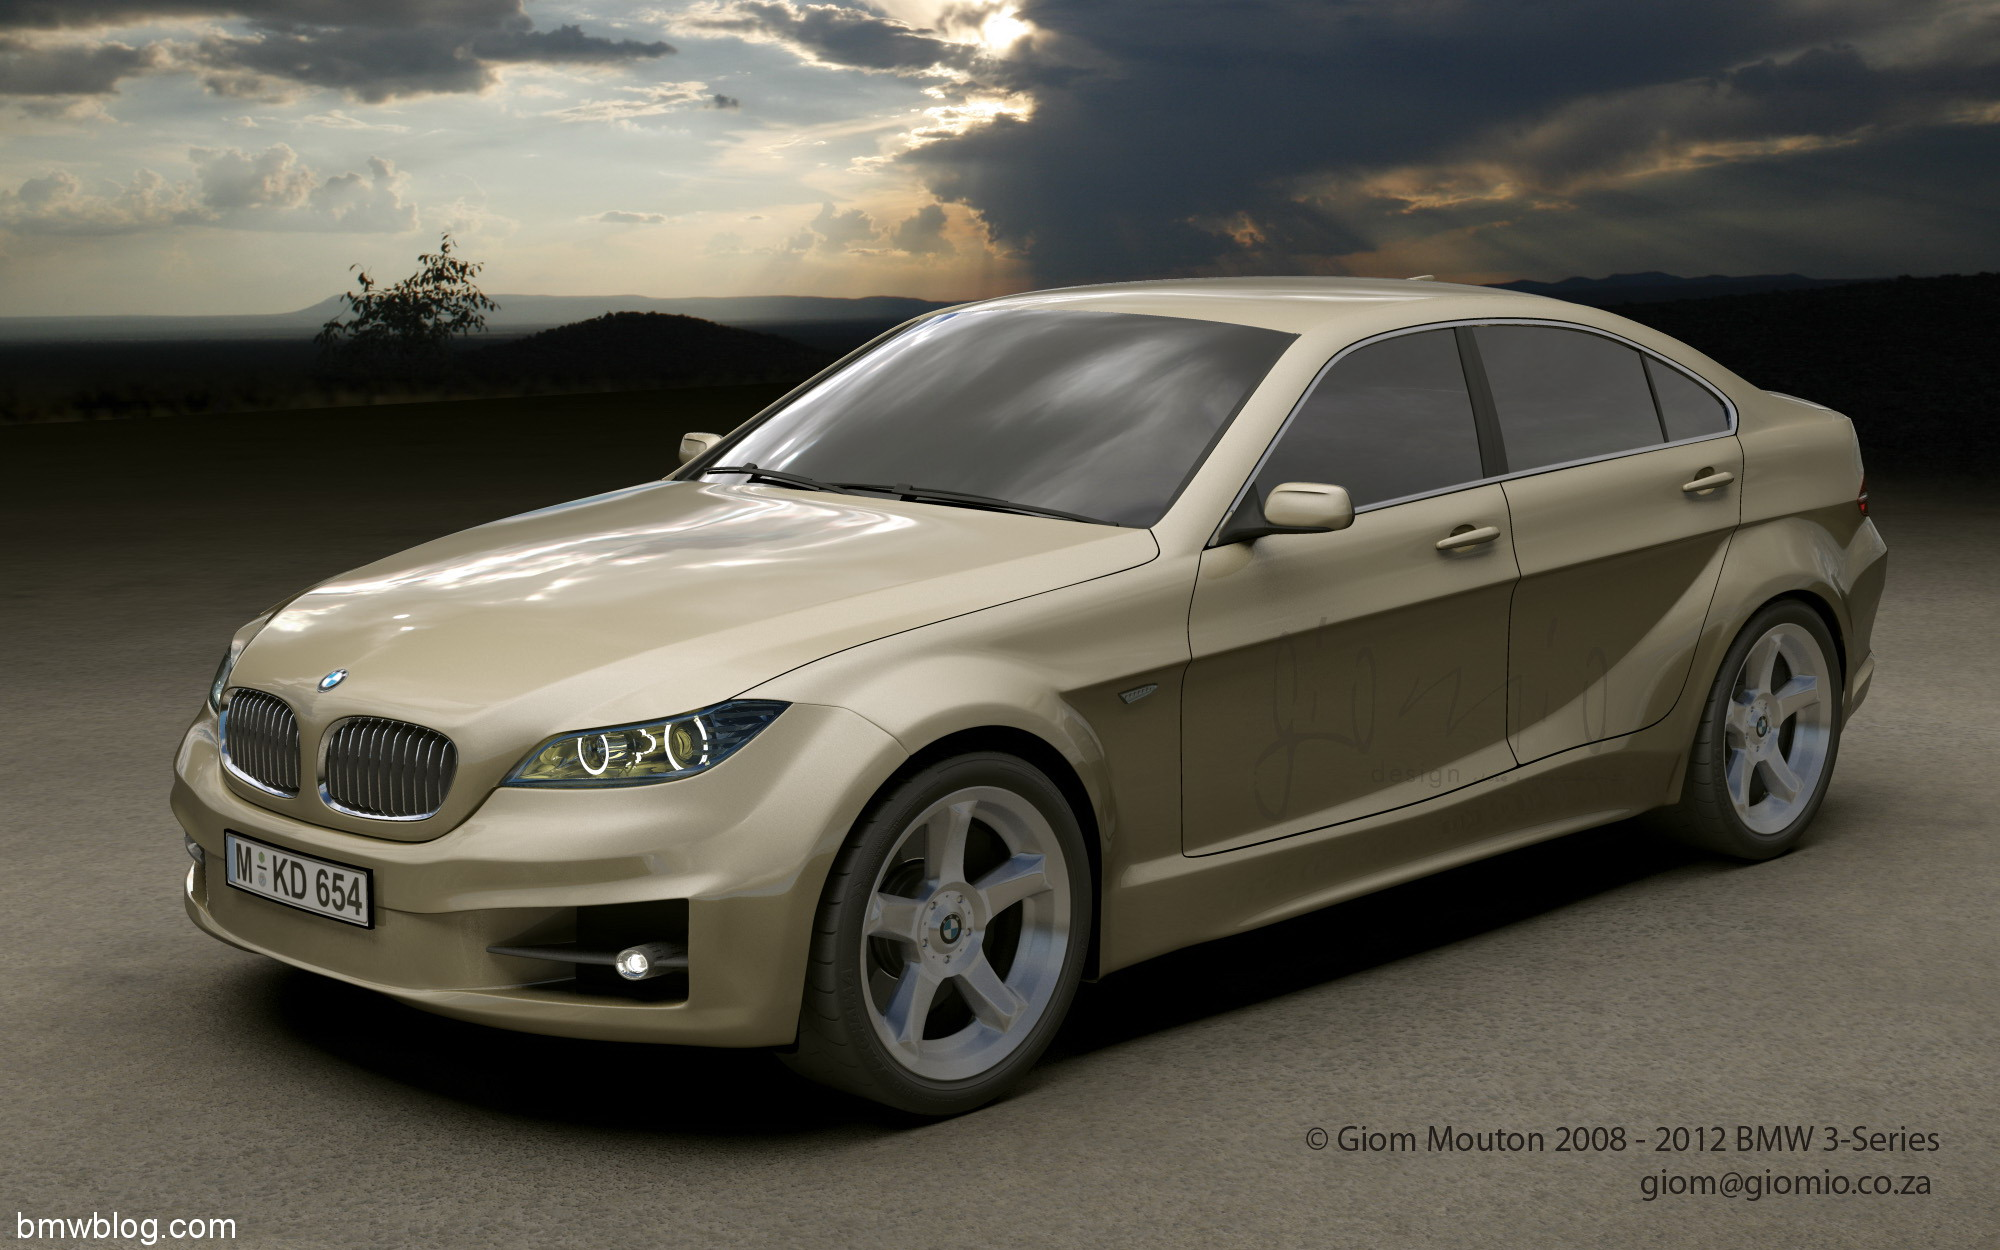 2012 BMW 3-Series Will Look Like This? News - Top Speed